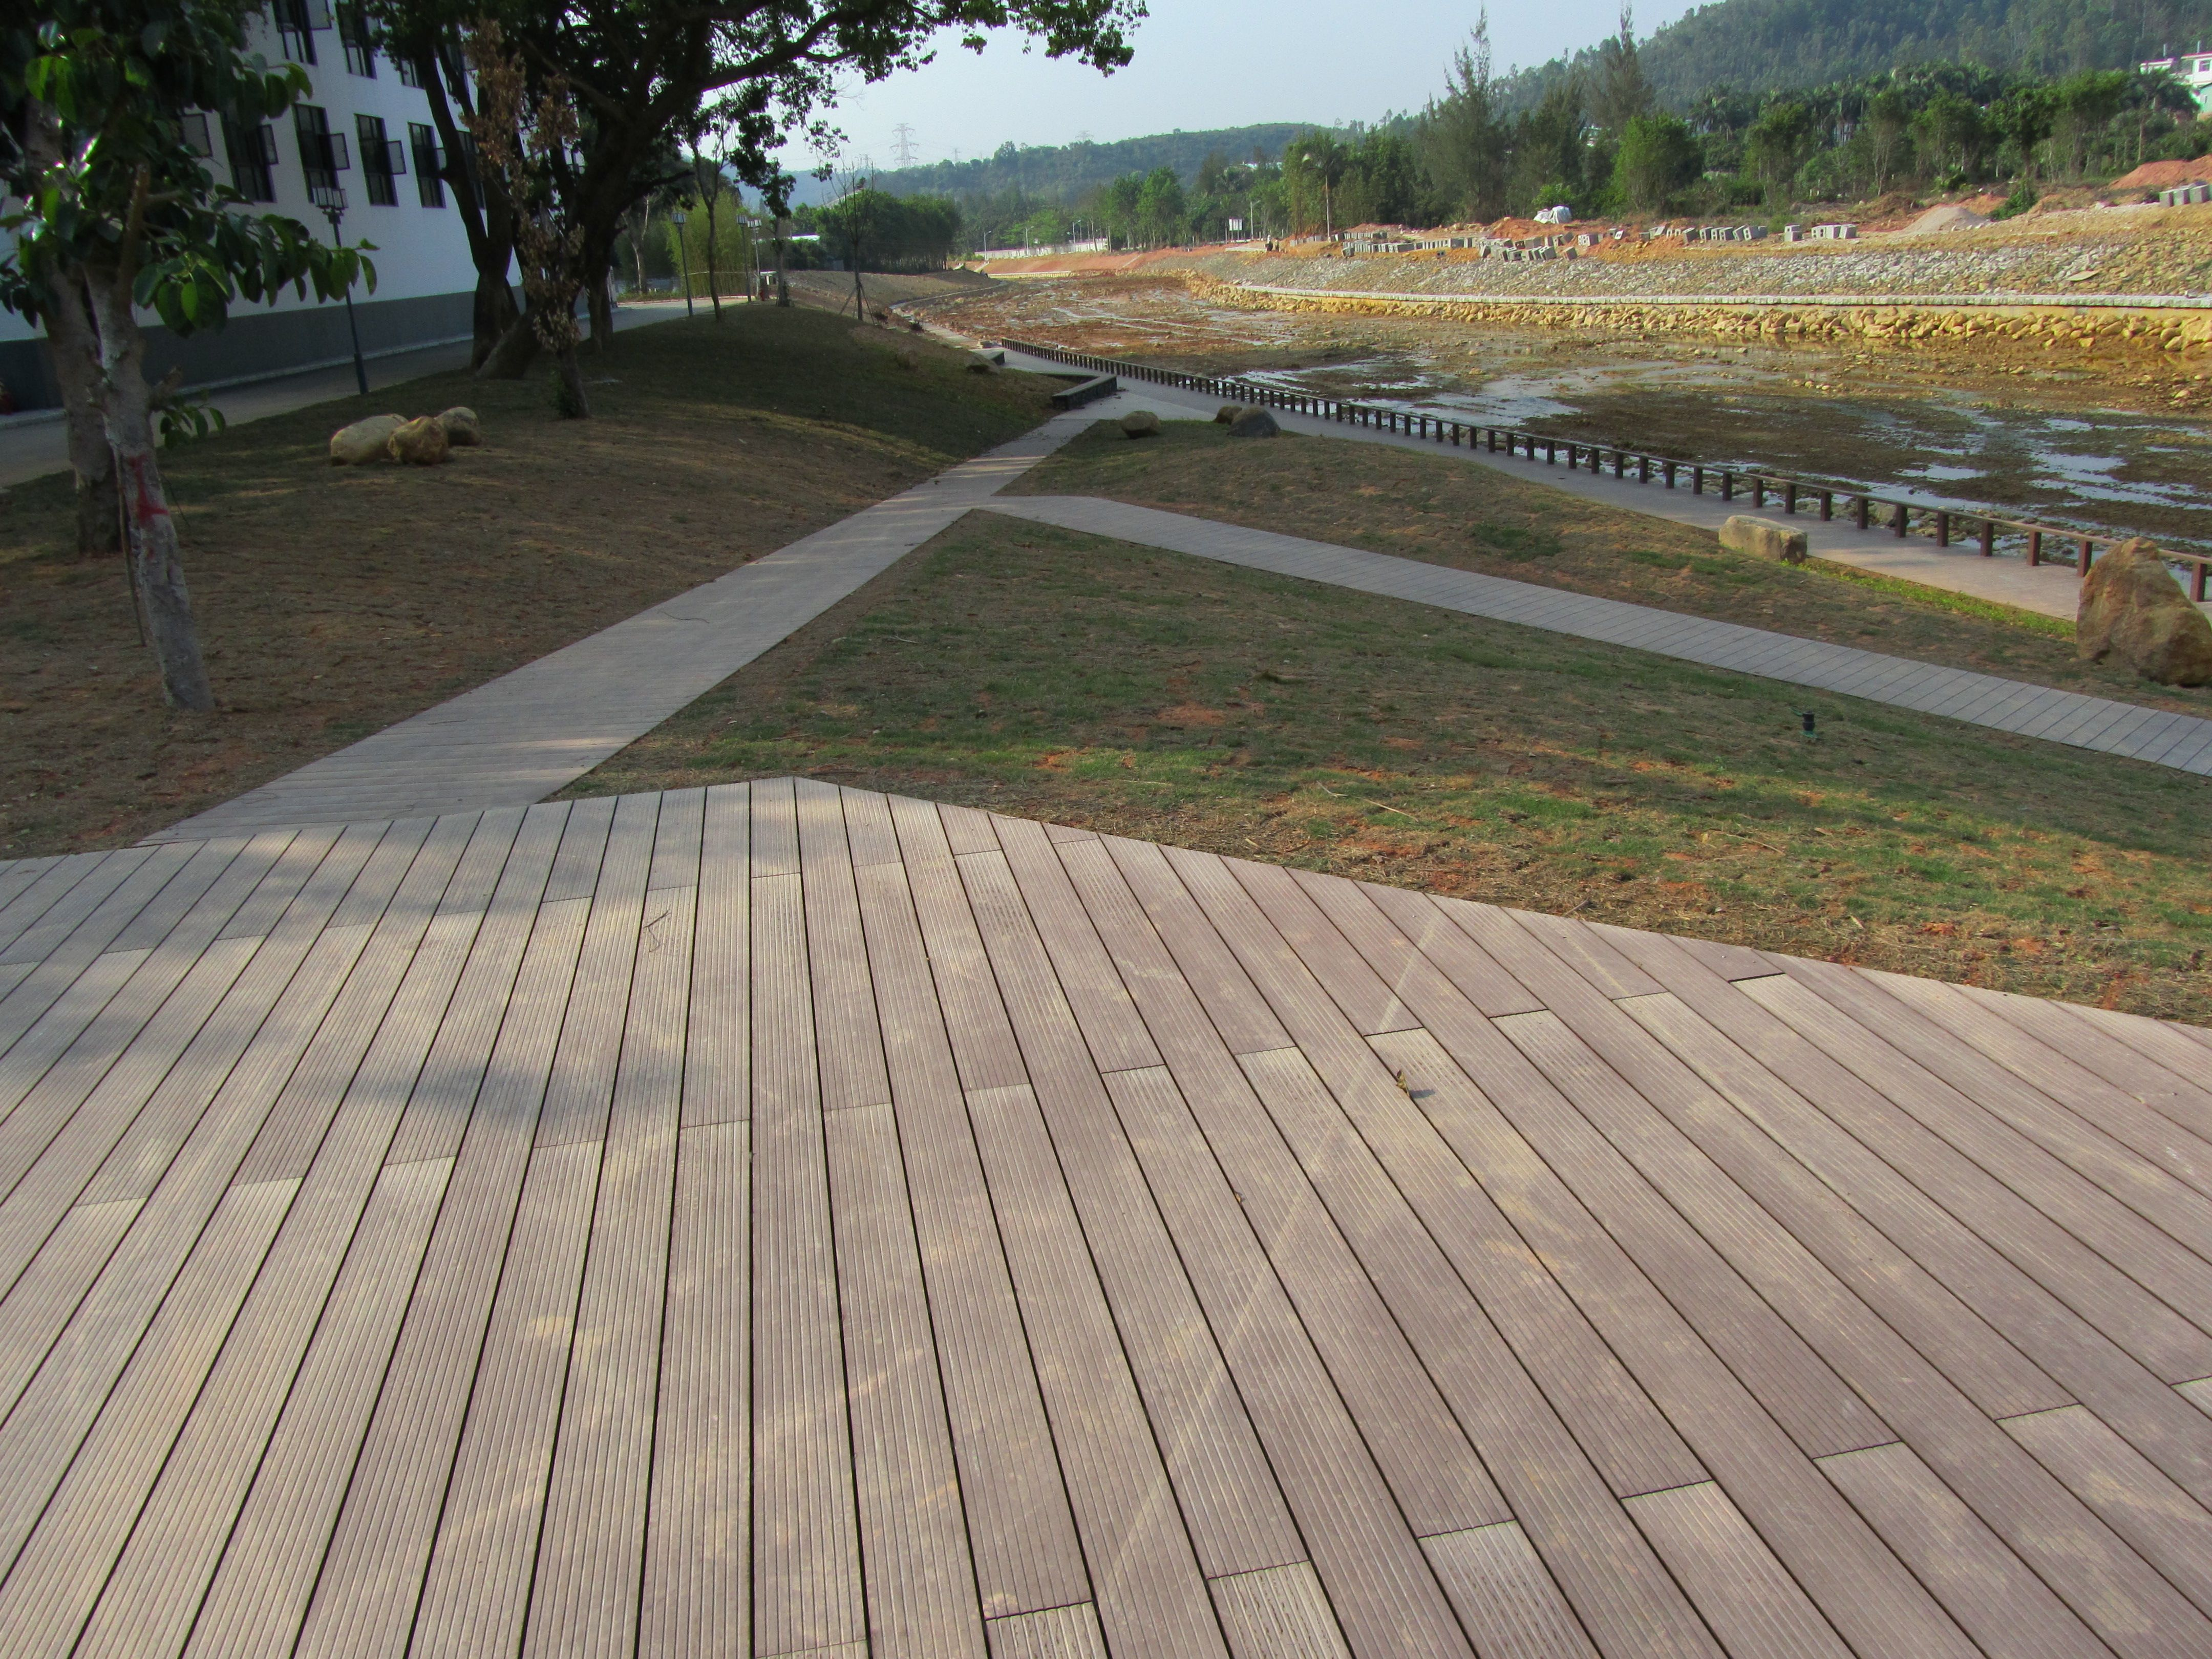 Superieur Temporary Outdoor Flooring To Cover Dirt,outdoor Laminate Flooring Over  Concrete,market For 2x6 Tonguee And Groove Decking,